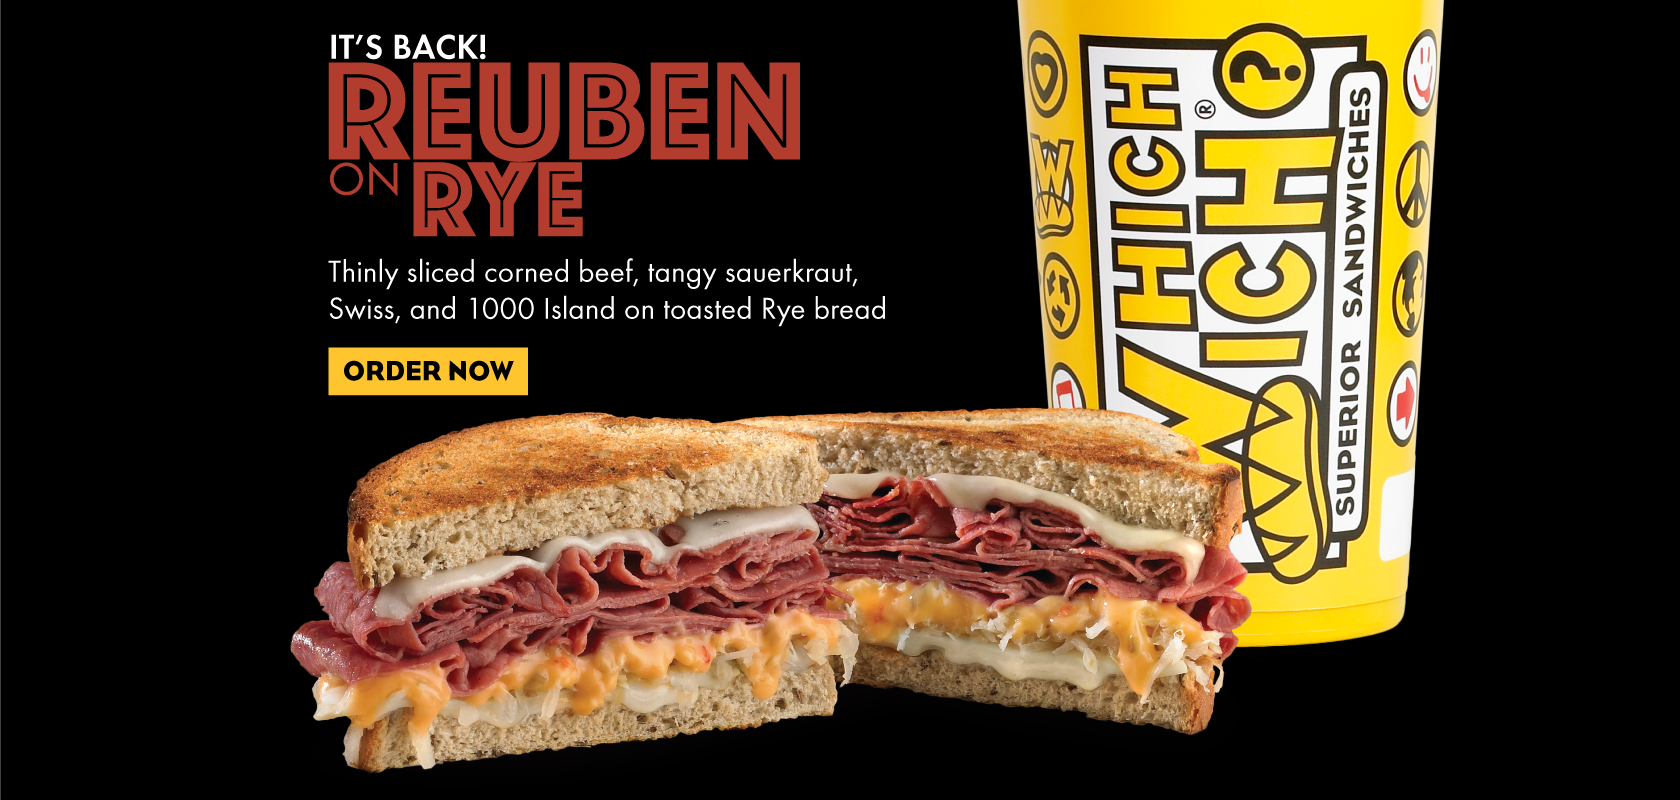 Our Reuben on Rye is back! It's made with thinly sliced corned beef, tangy sauerkraut, Swiss, and 1000 Island on toasted Rye Bread